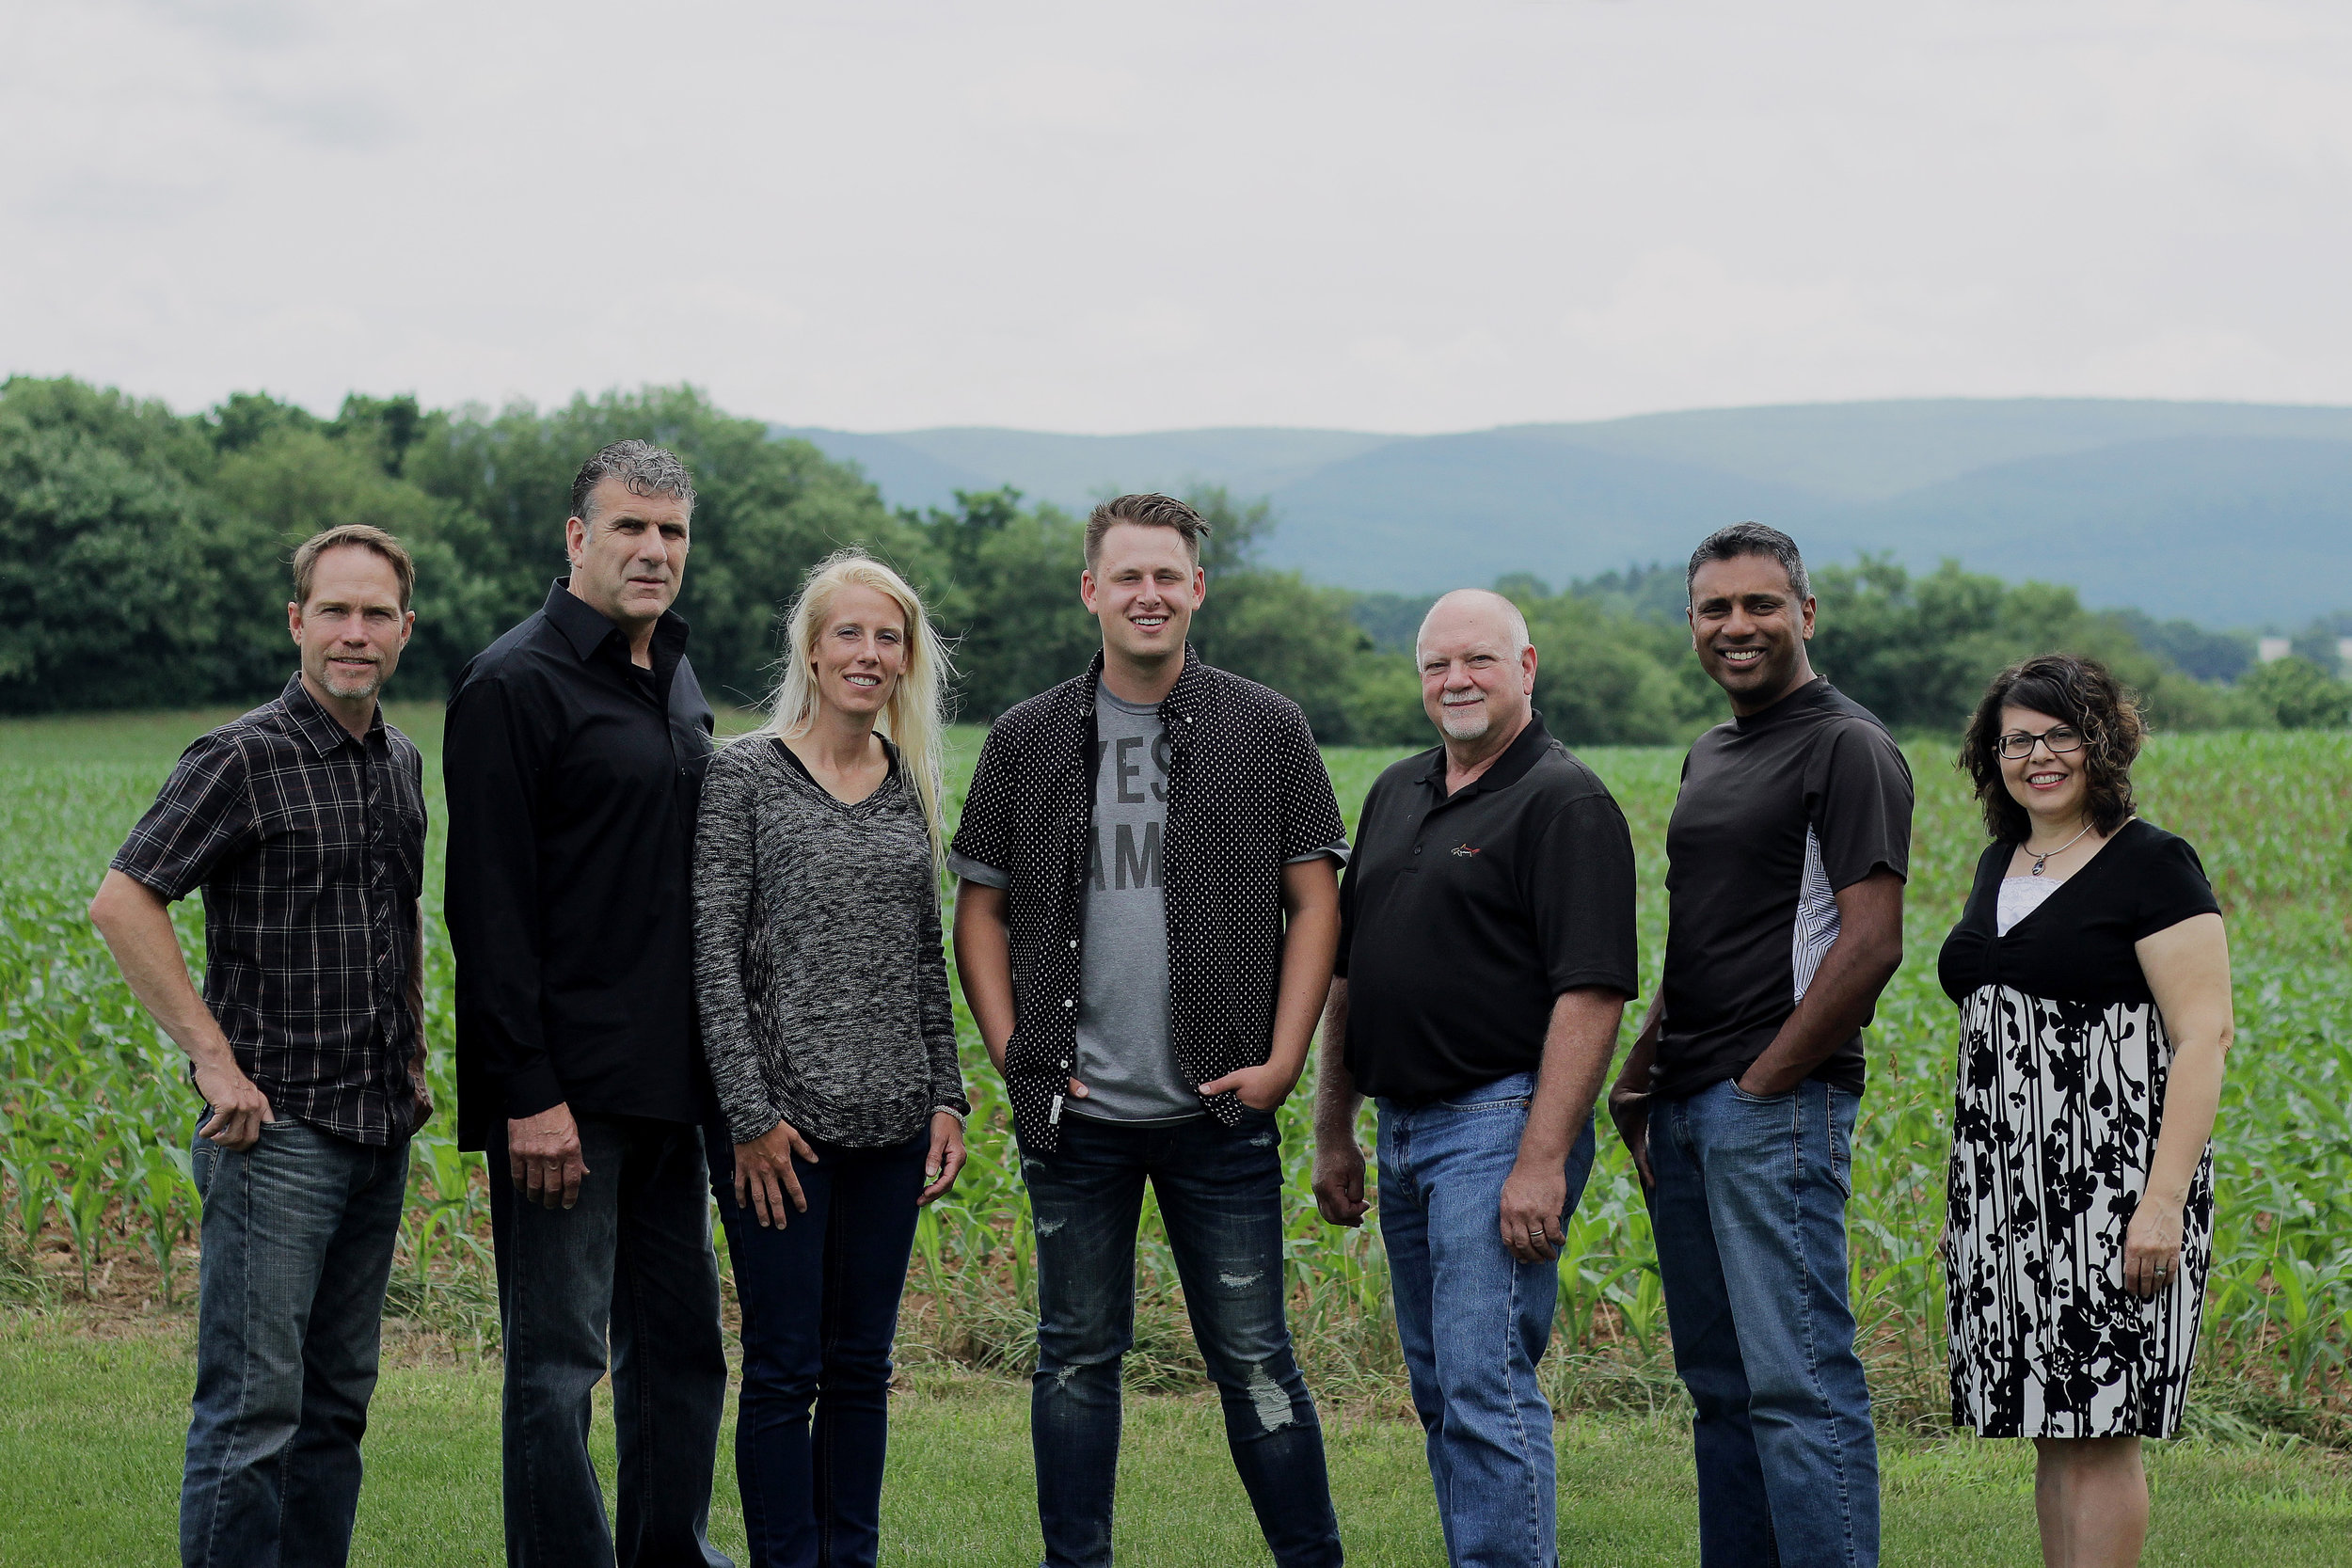 Living Faith Worship - Living Faith Worship is the worship team from Living Faith Chapel in Shippensburg, PA. LFC worship is passionate about the presence of God and about creating an atmosphere of heaven on earth.